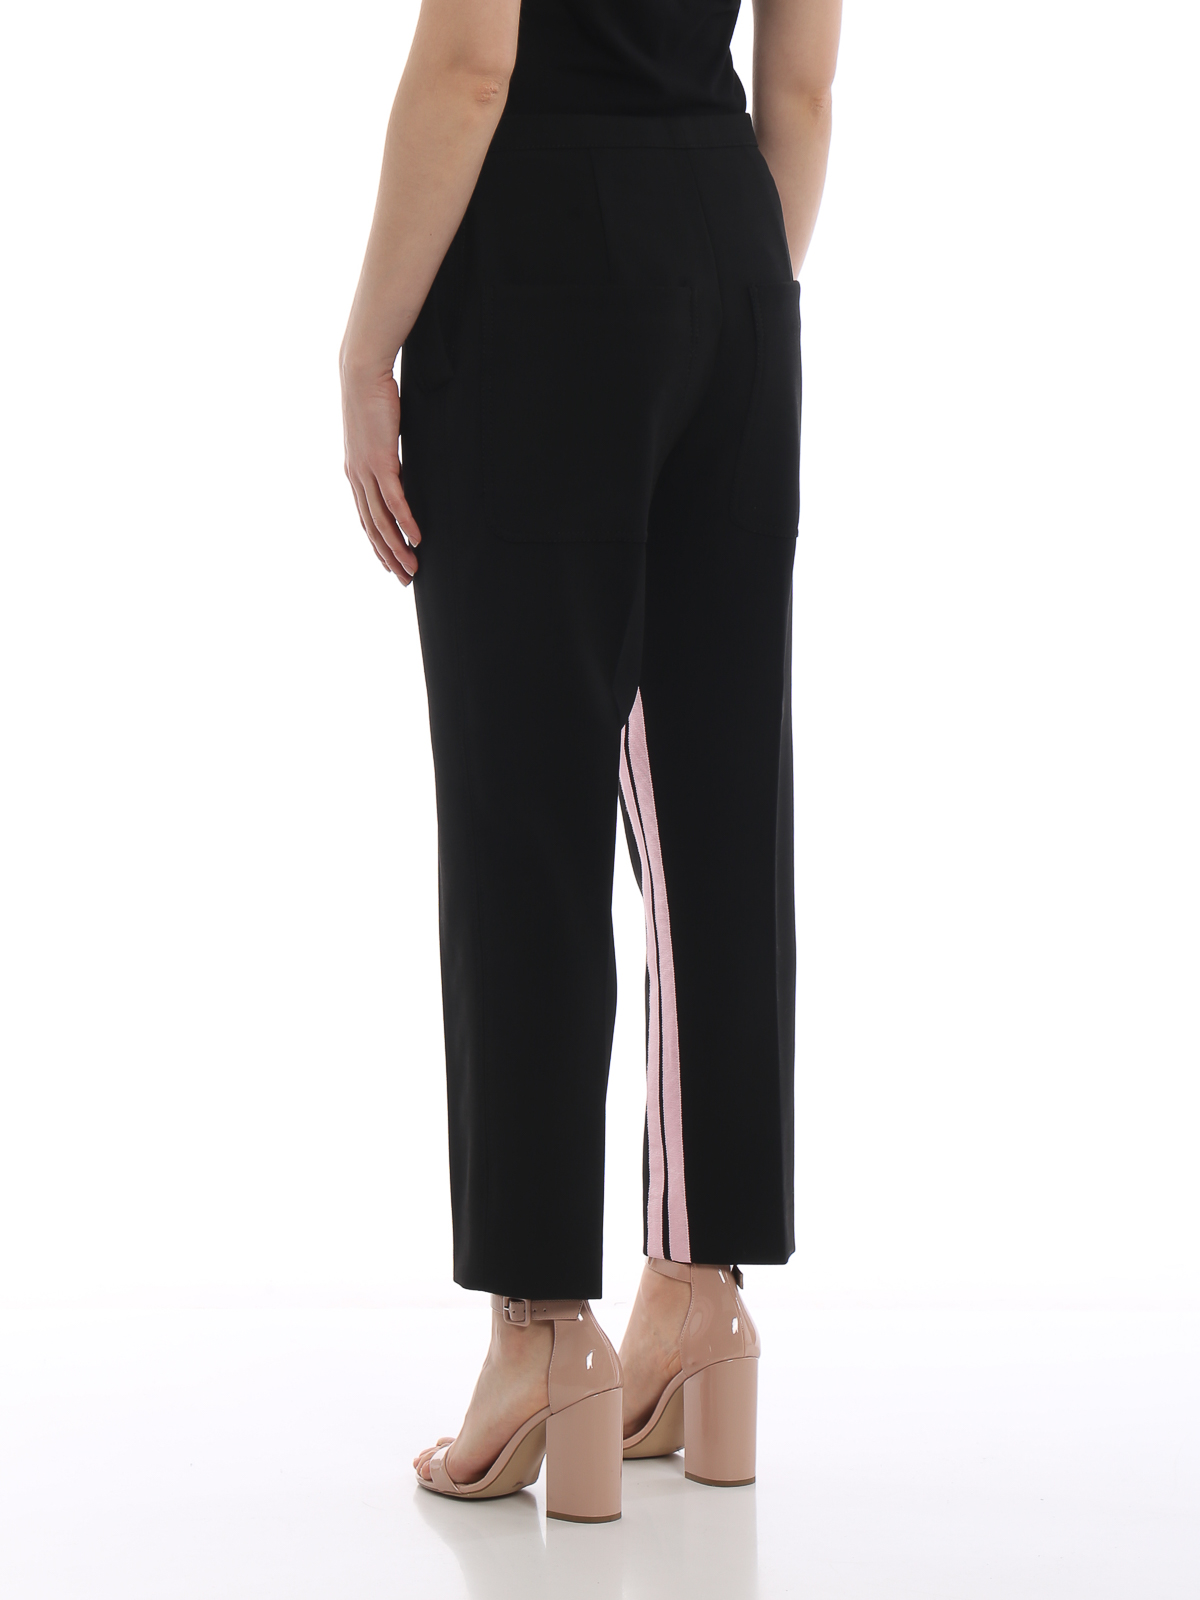 38bd4b89e82 cargo-style-trousers-with-pink-bands-shop-online-n21-00000147456f00s004.jpg